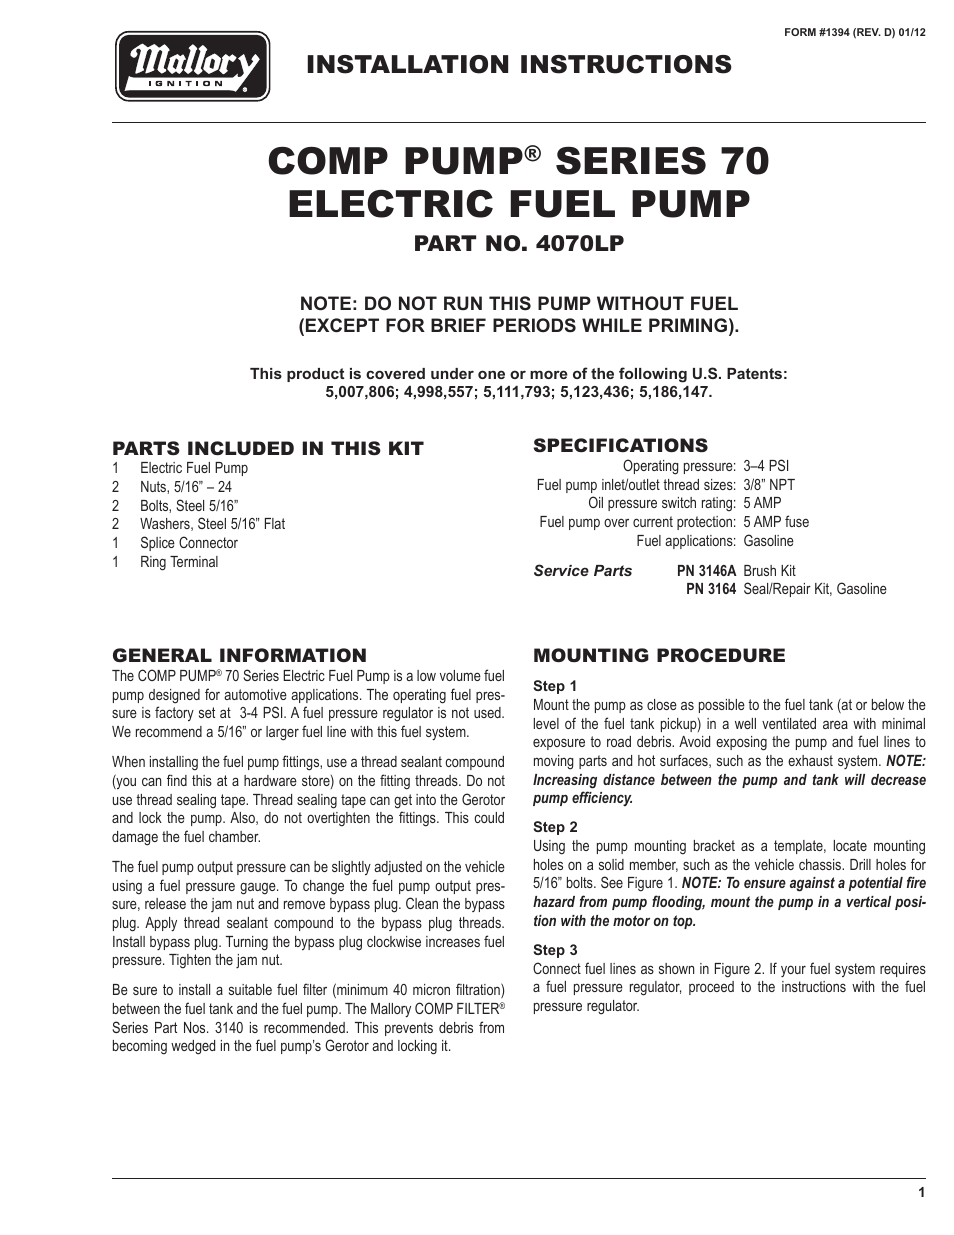 medium resolution of mallory ignition mallory comp pump series 70 electric fuel pump 4070lp user manual 4 pages